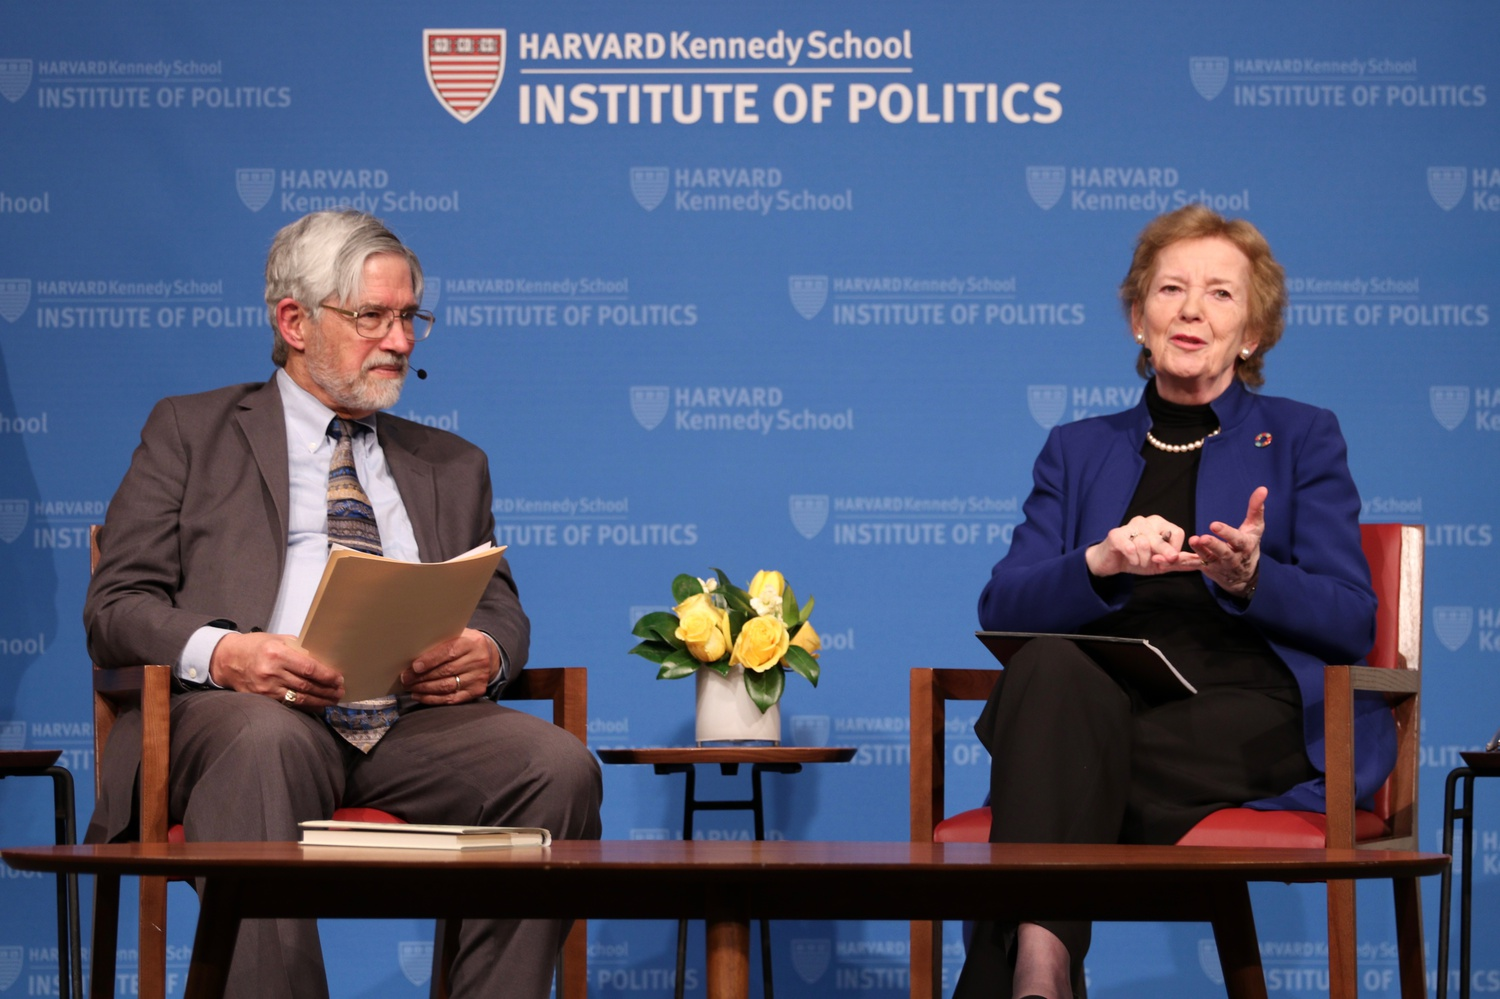 Mary Robinson, former President of Ireland, and Professor John Holdren, who teaches environmental policy at the Kennedy School, discuss climate justice during an IOP forum event Tuesday evening.